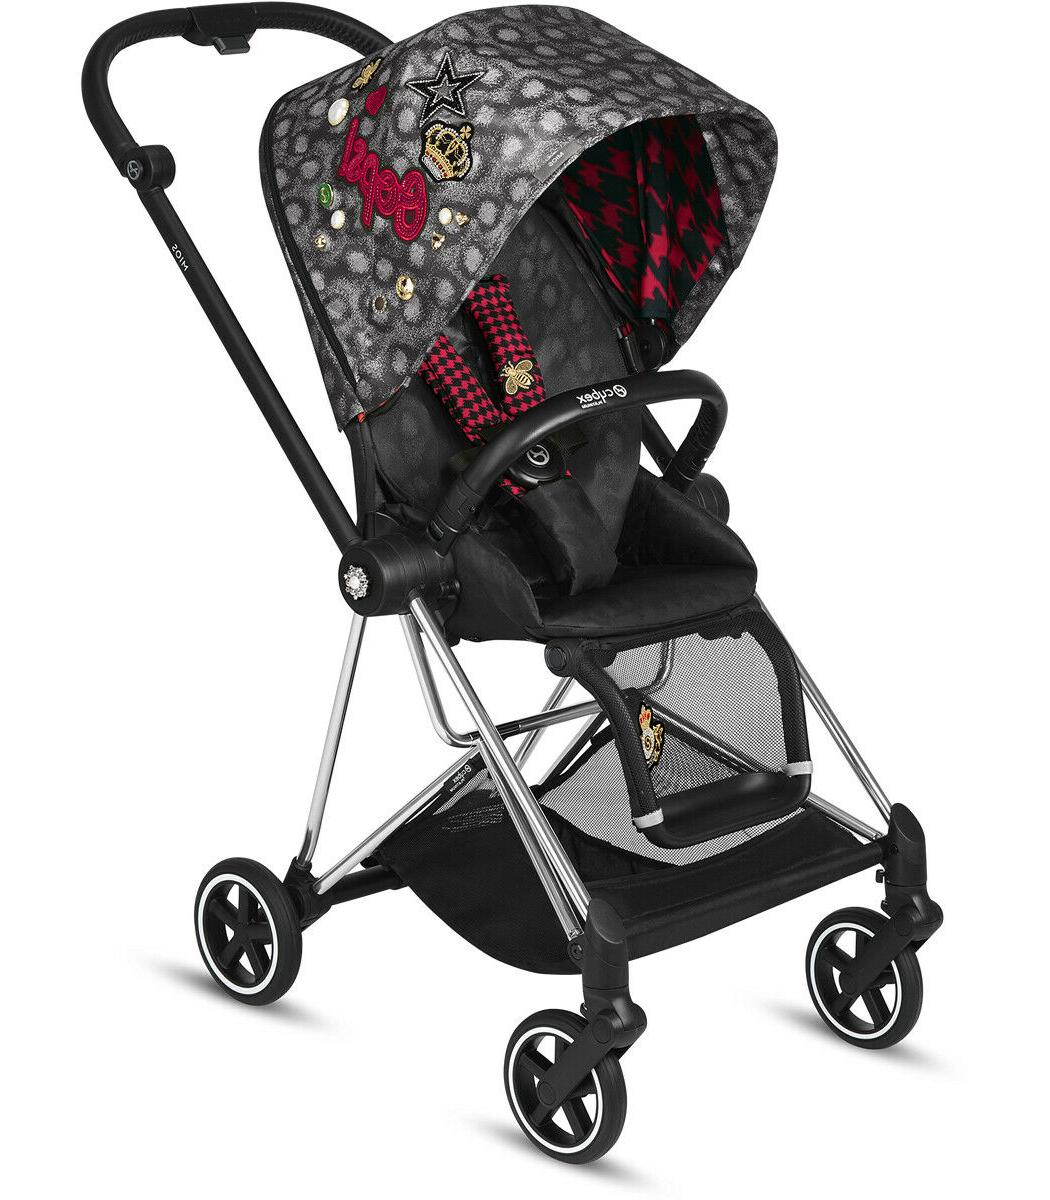 mios complete stroller rebellious new in sealed